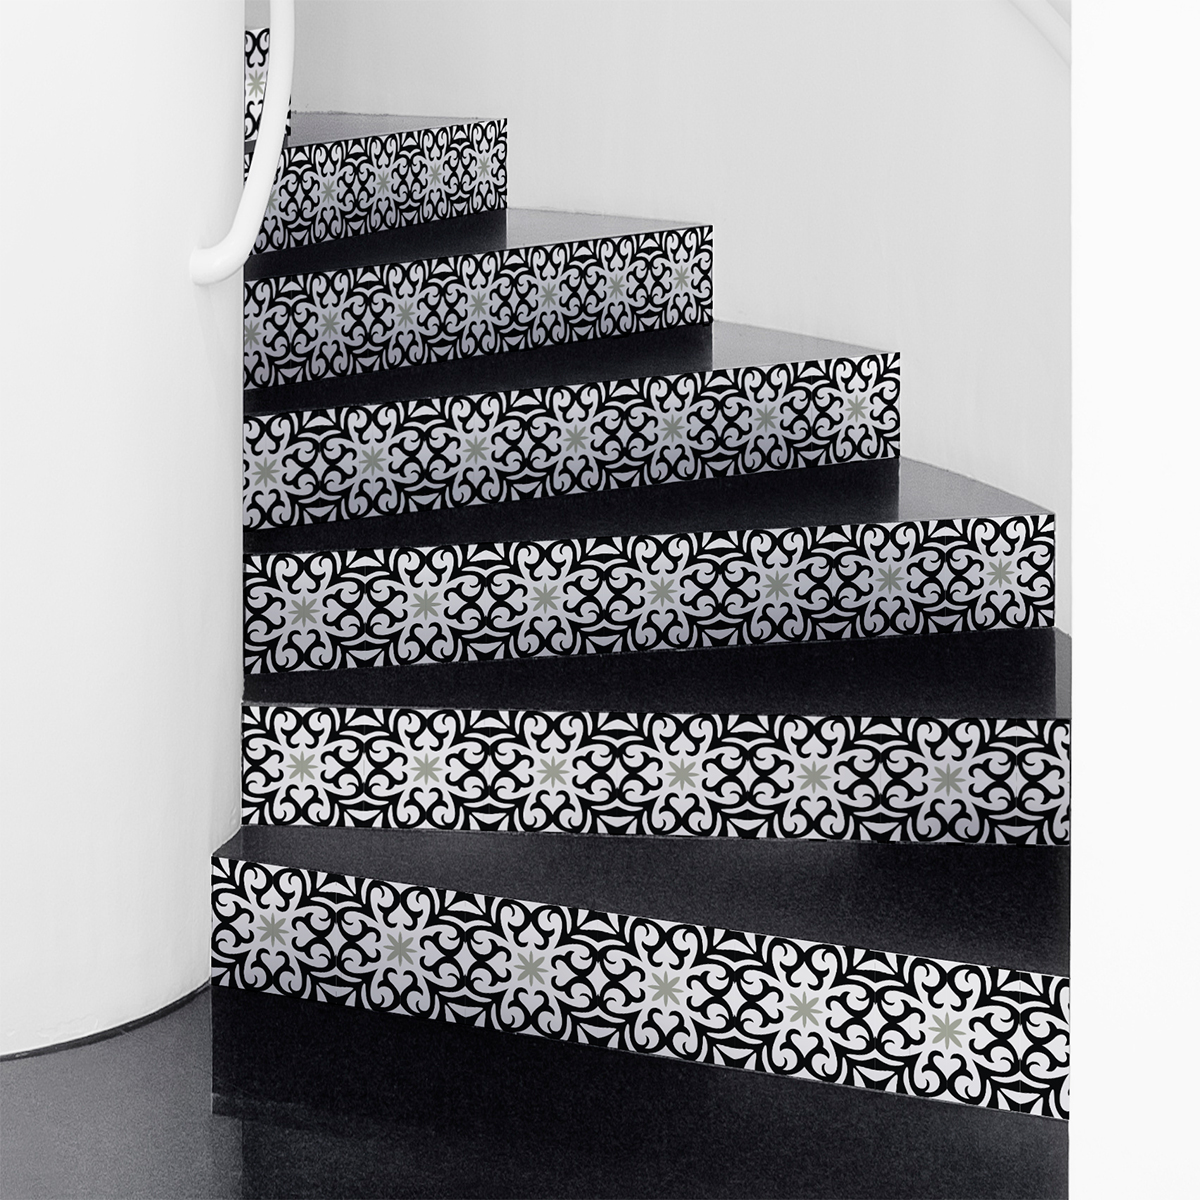 stickers escalier carreaux de ciment saveria x 2 ambiance sticker col stairs ros b537 stickers. Black Bedroom Furniture Sets. Home Design Ideas